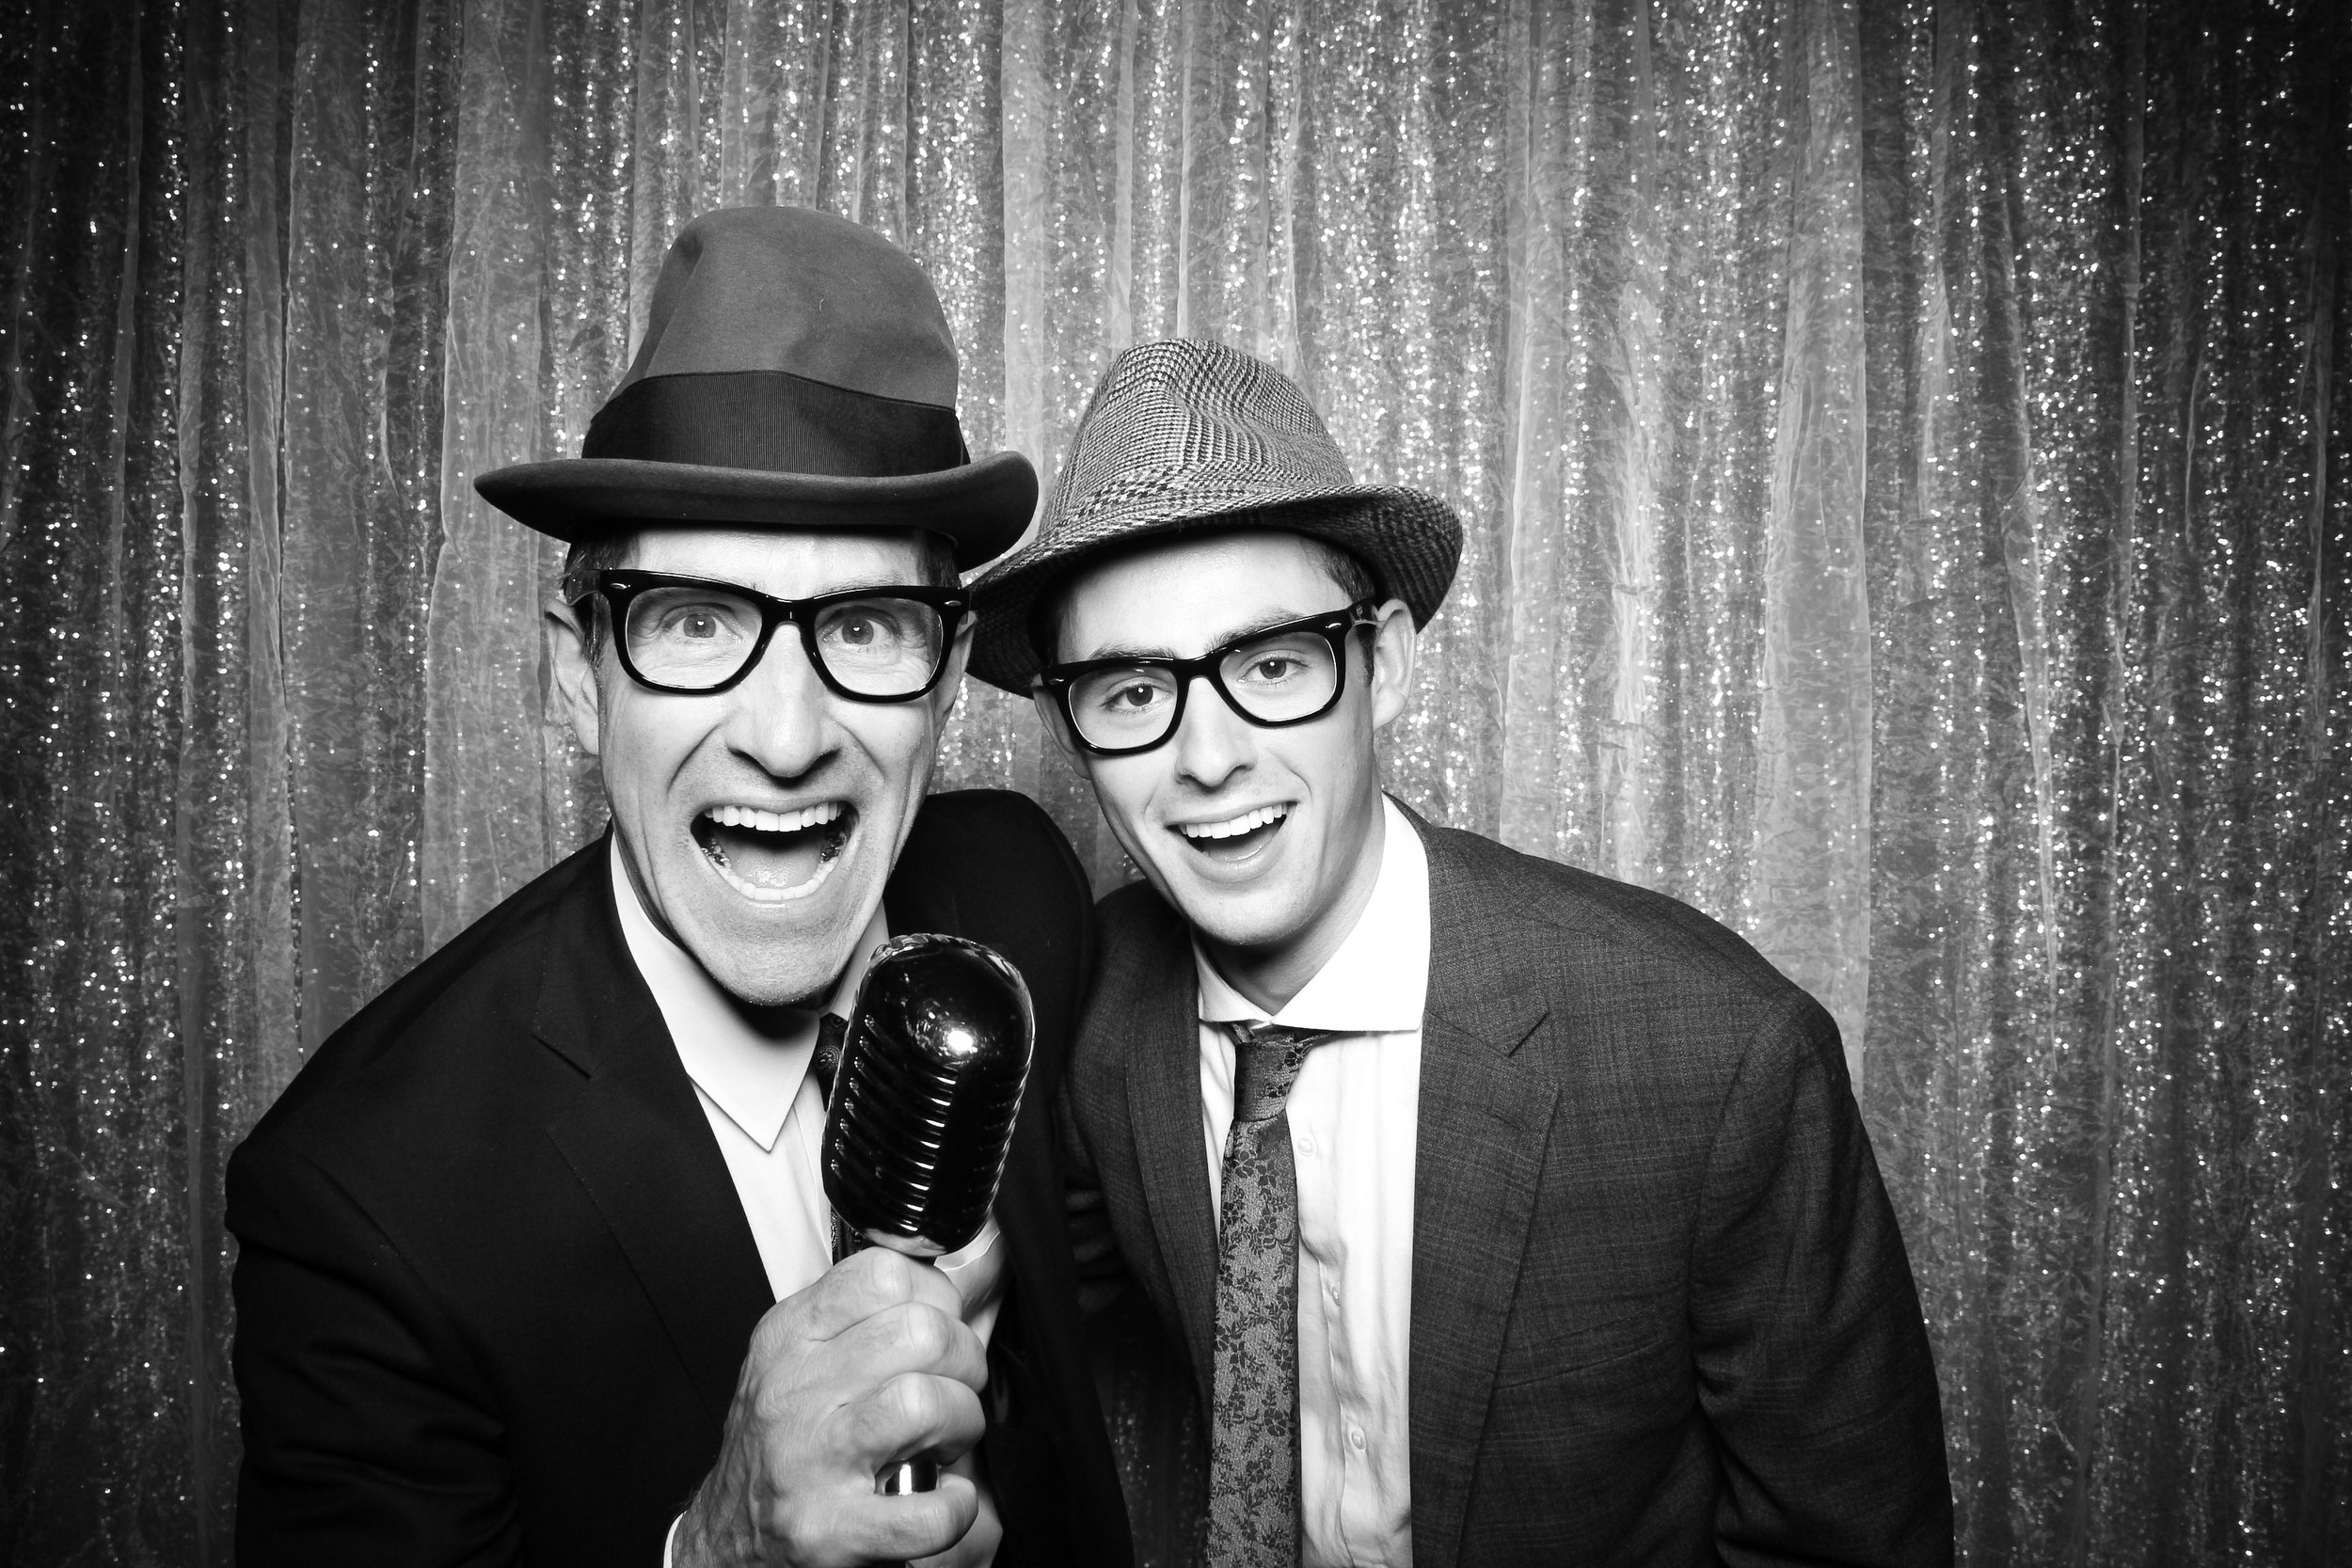 Chicago_Vintage_Wedding_Photobooth_Glen_Club_09.jpg